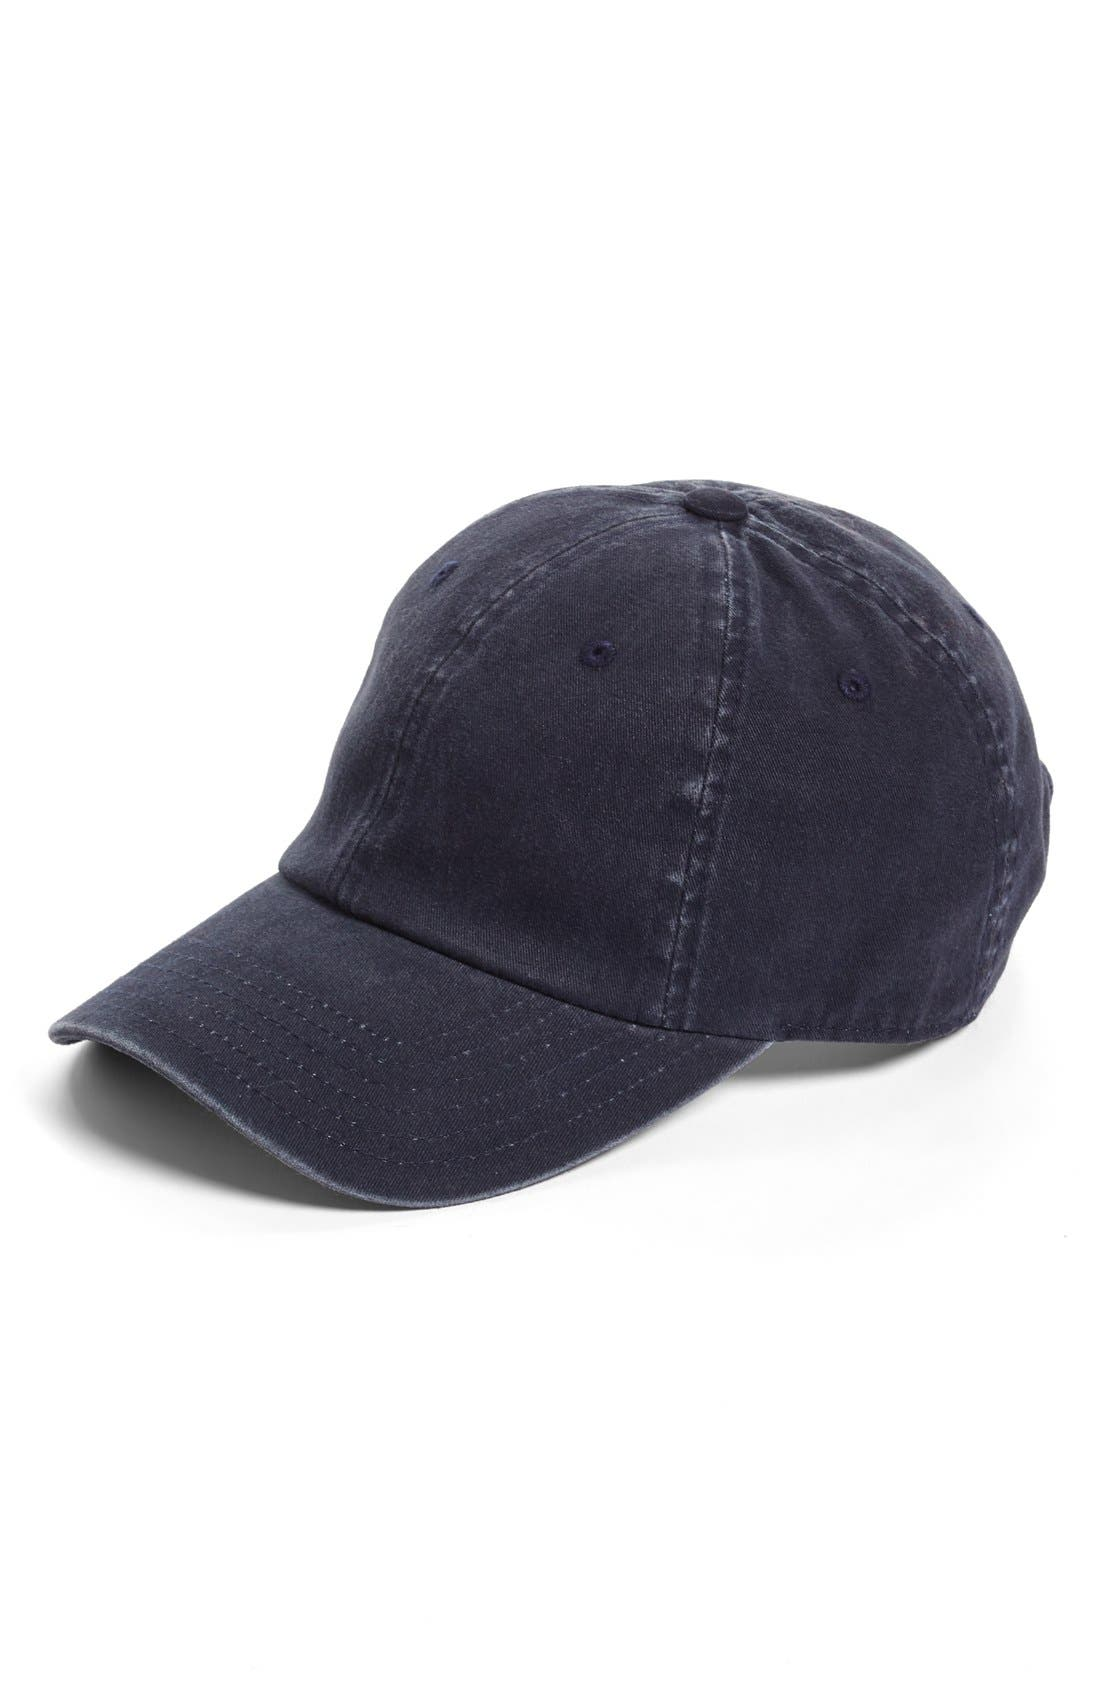 Main Image - American Needle Washed Baseball Cap